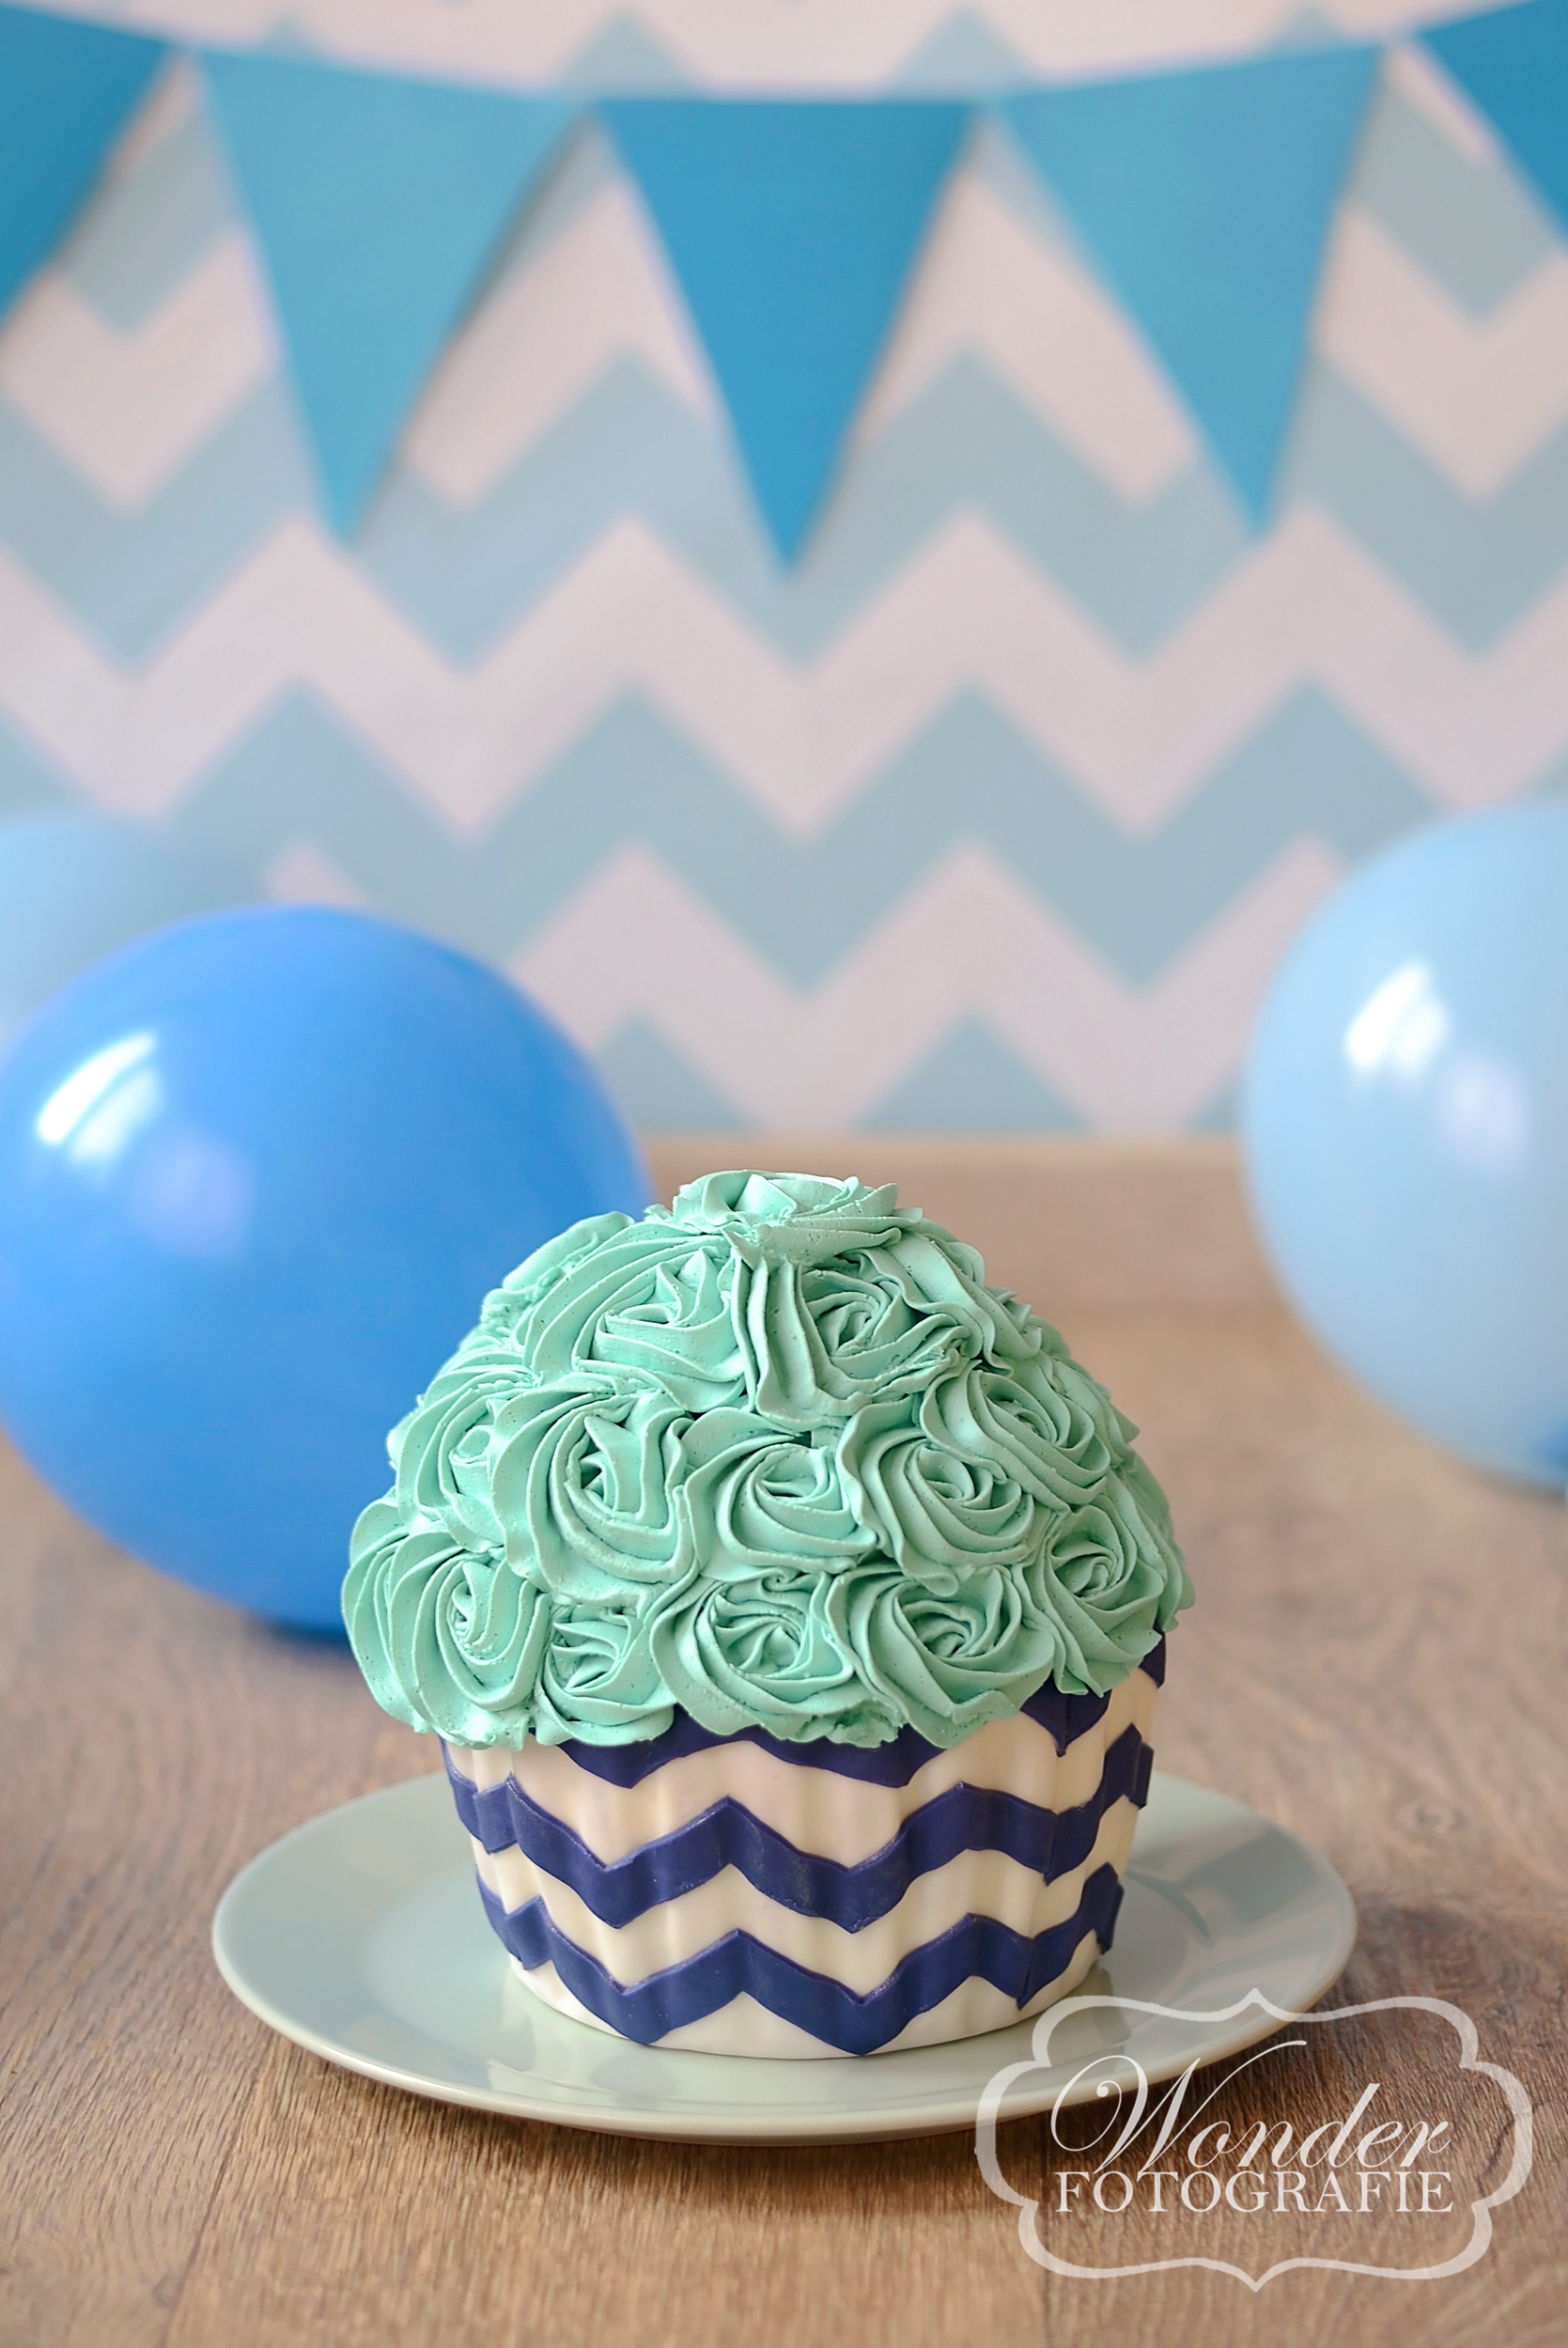 Cake Smash Chevron - Wonder Fotografie